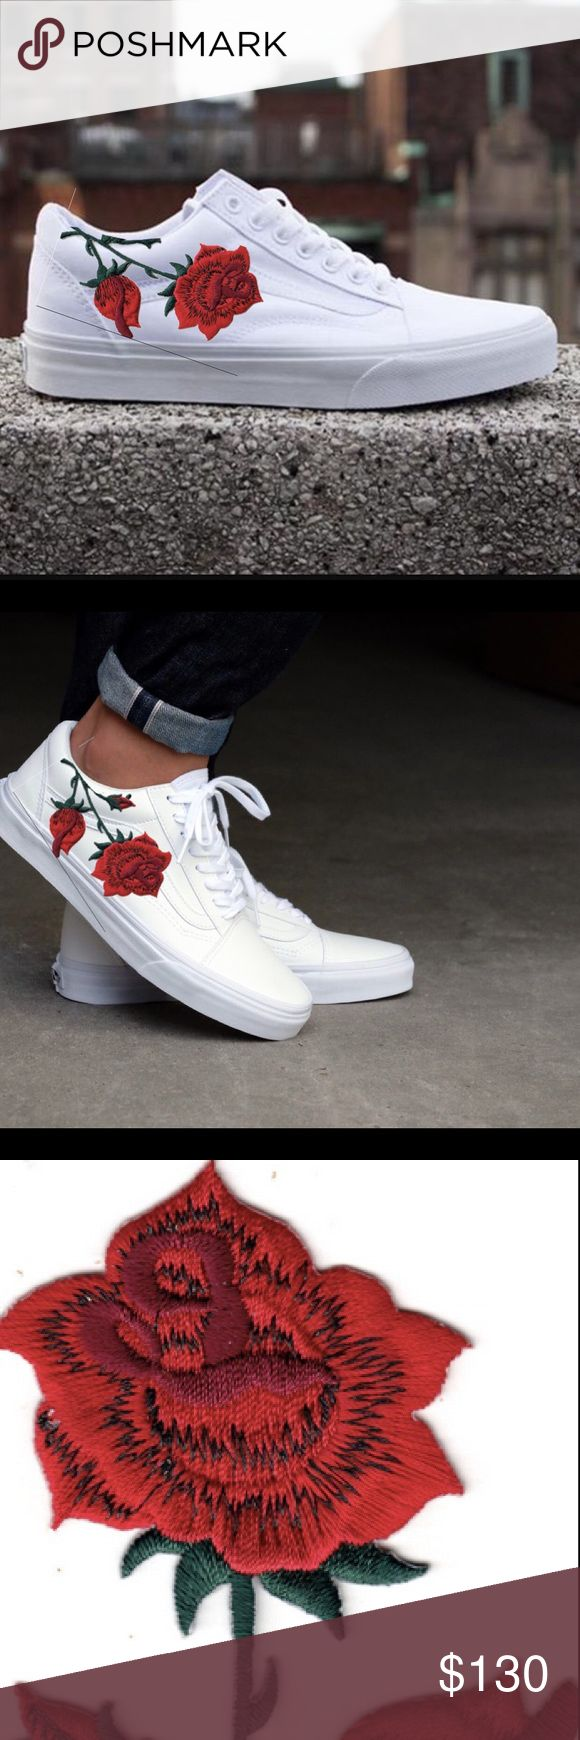 Vans Old Skool White Embroidered Red Rose  customize your own!! Beautiful sleek design of vans old skools mixed with a red rose embroidered to give you these phenomenal shoes. All of the shoes will be purchased brand new and handmade by me (Avery ) The vans brand new are 55$ for low tops and 65$ for high tops!! And the cost of work and the patch is 50$  Can customize with the options of: COLOR: white, black SIZE: any! SHOE STYLE: low tops, high tops  MESSAGE ME FOR MORE INFO!  Preview photo…